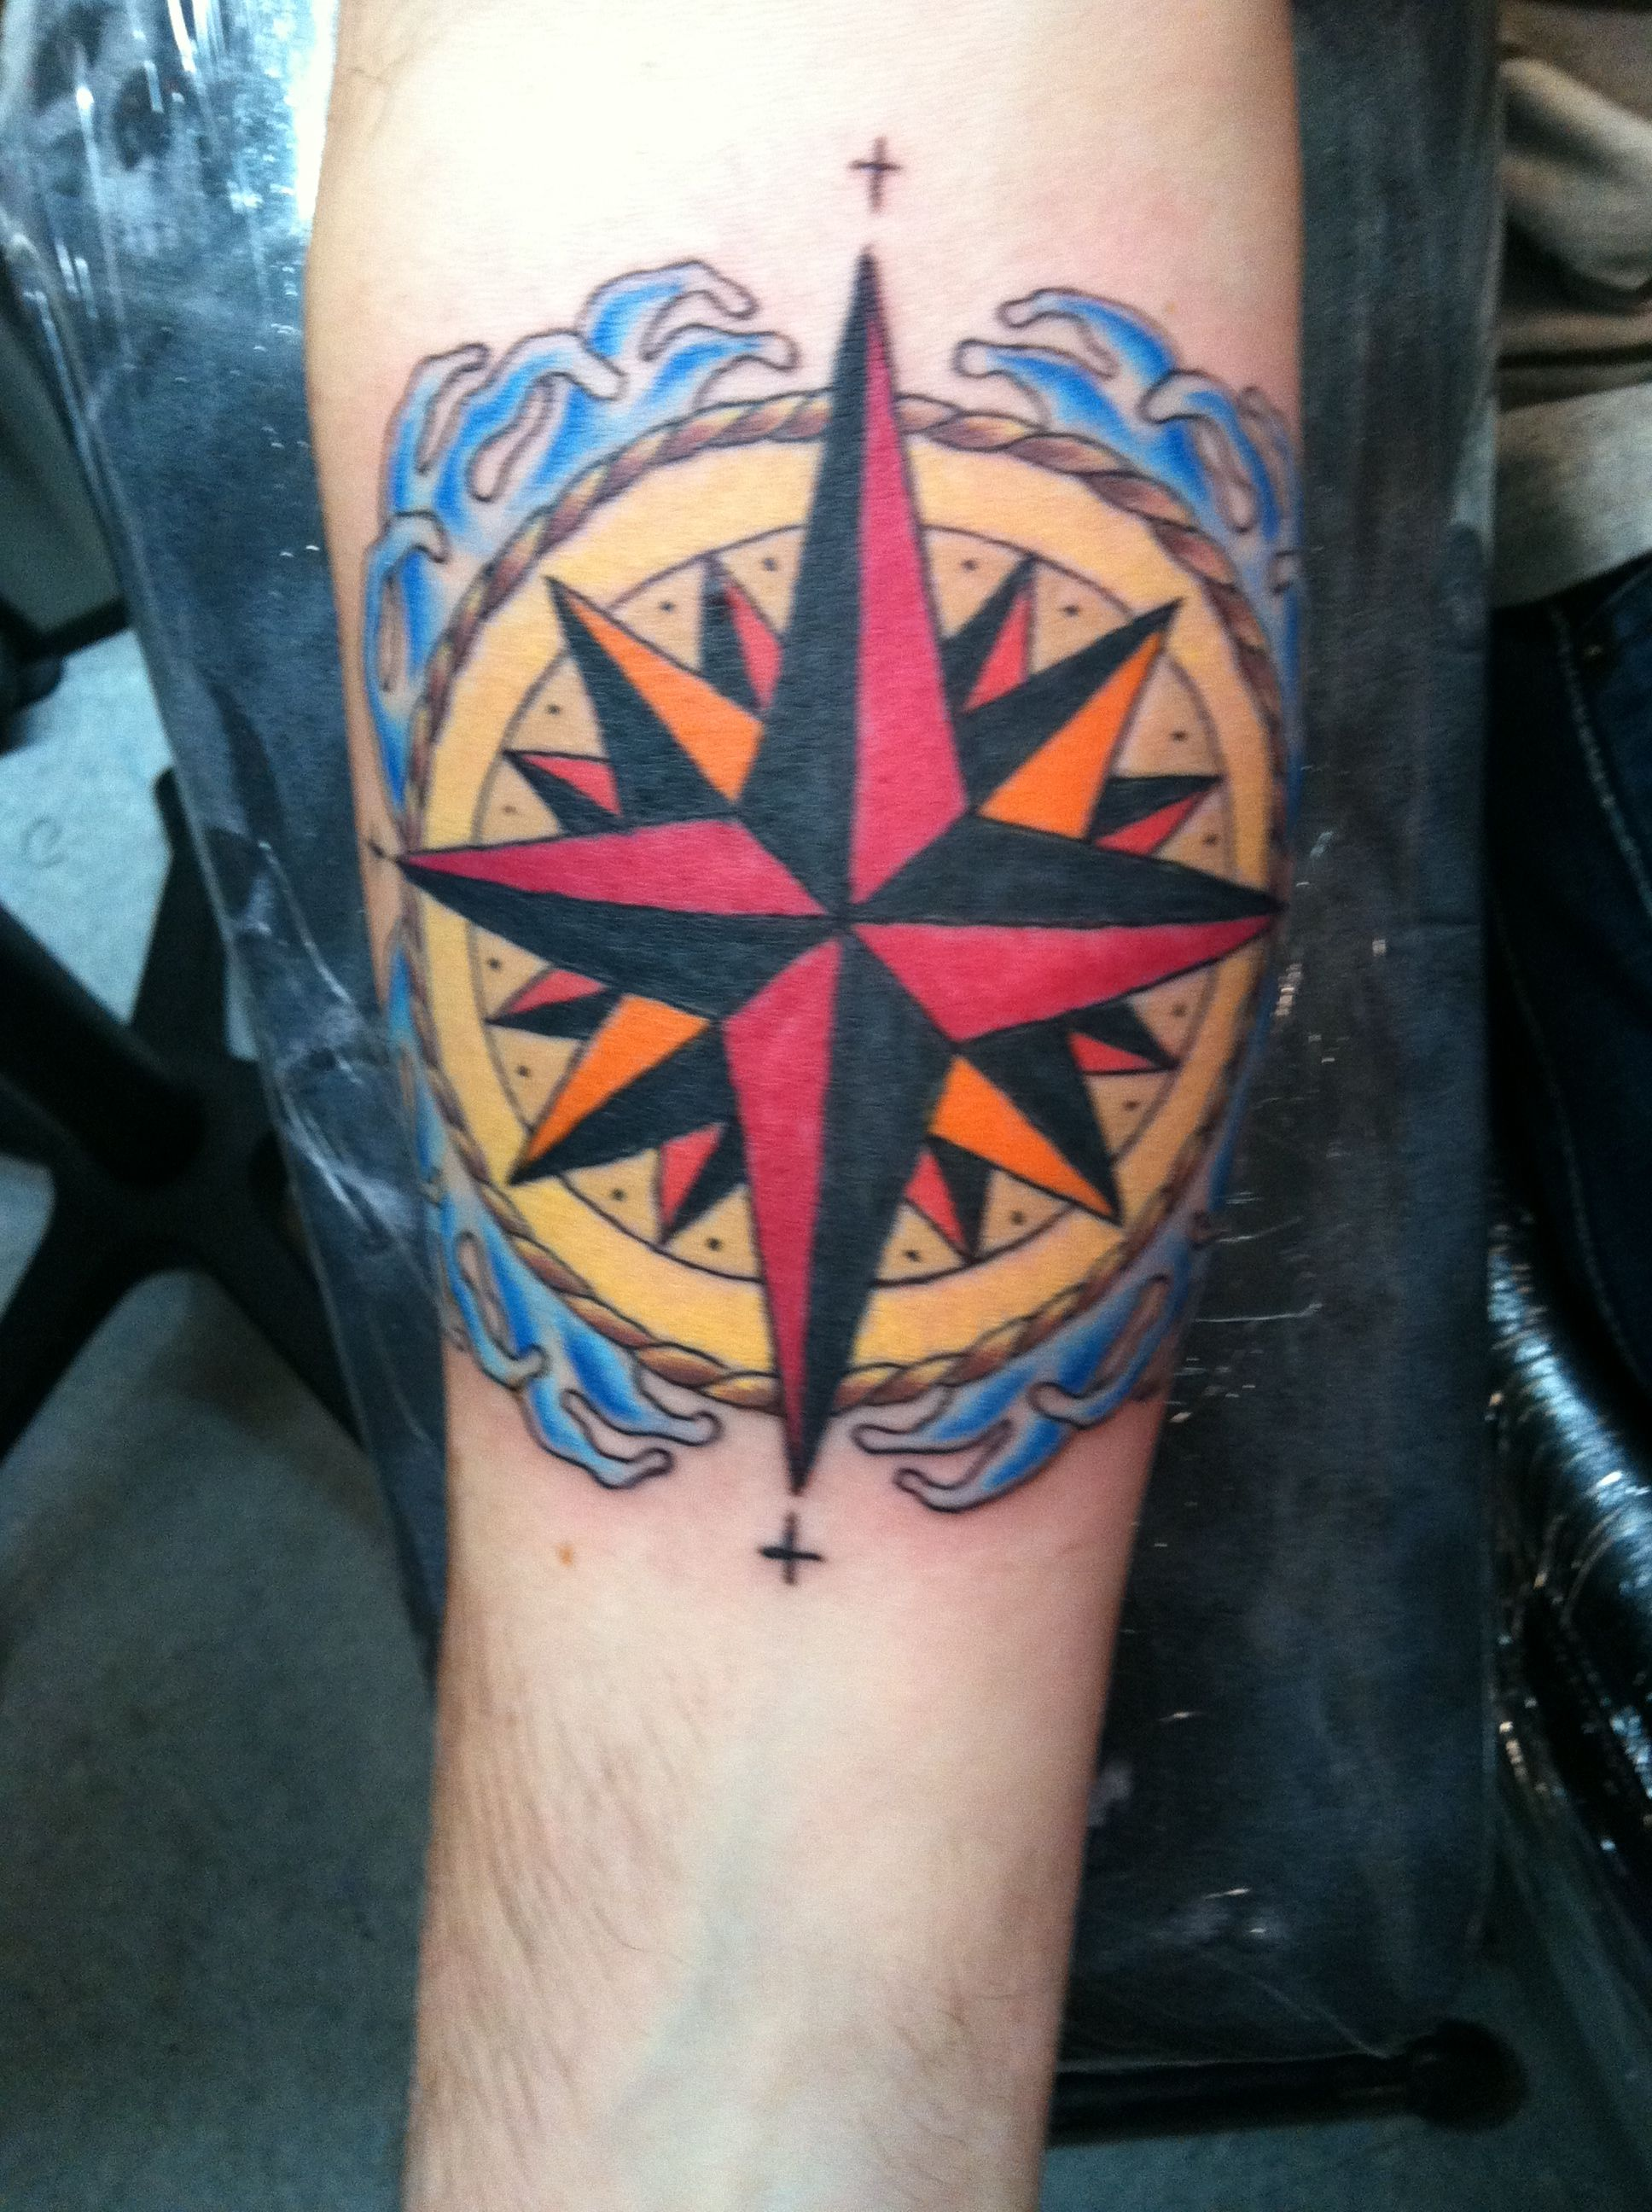 Compass Rose With Crosses At The Four Cardinal Directions